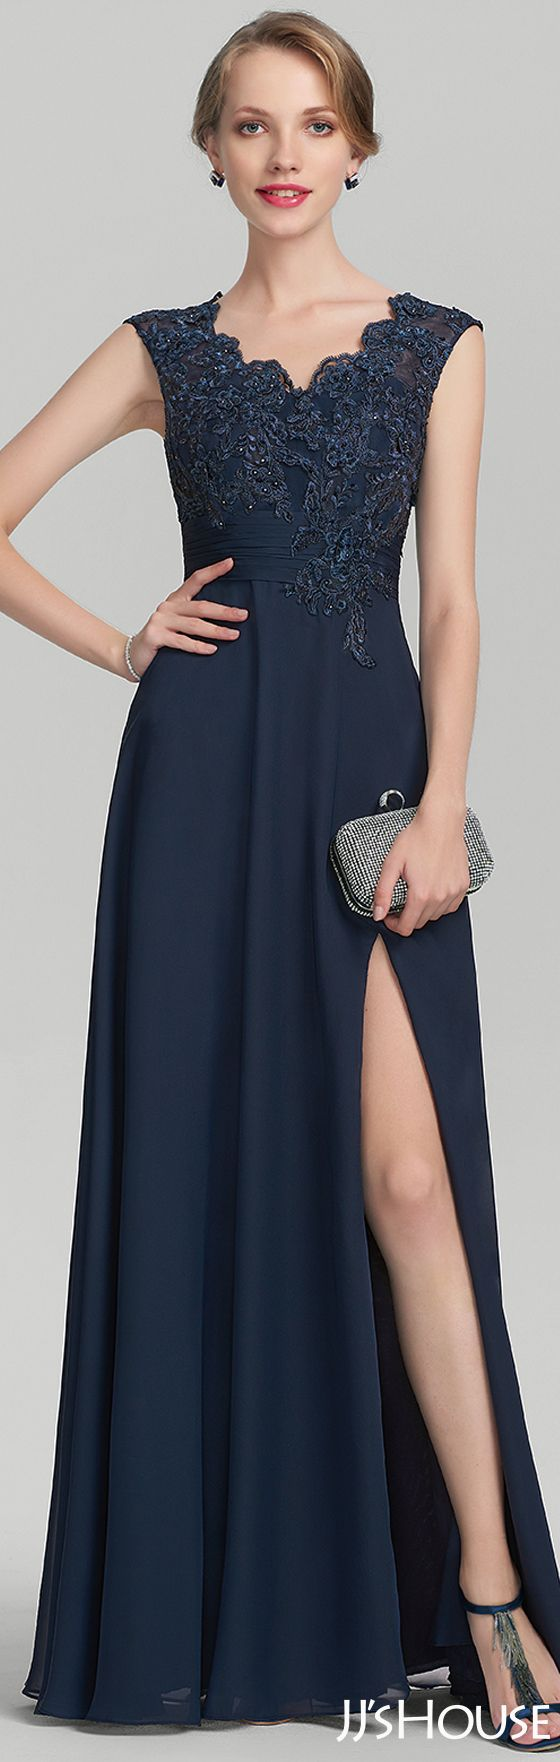 A-Line/Princess V-neck Floor-Length Chiffon Lace Mother of the Bride Dress With Beading Split Front#JJsHouse #Mother dresses